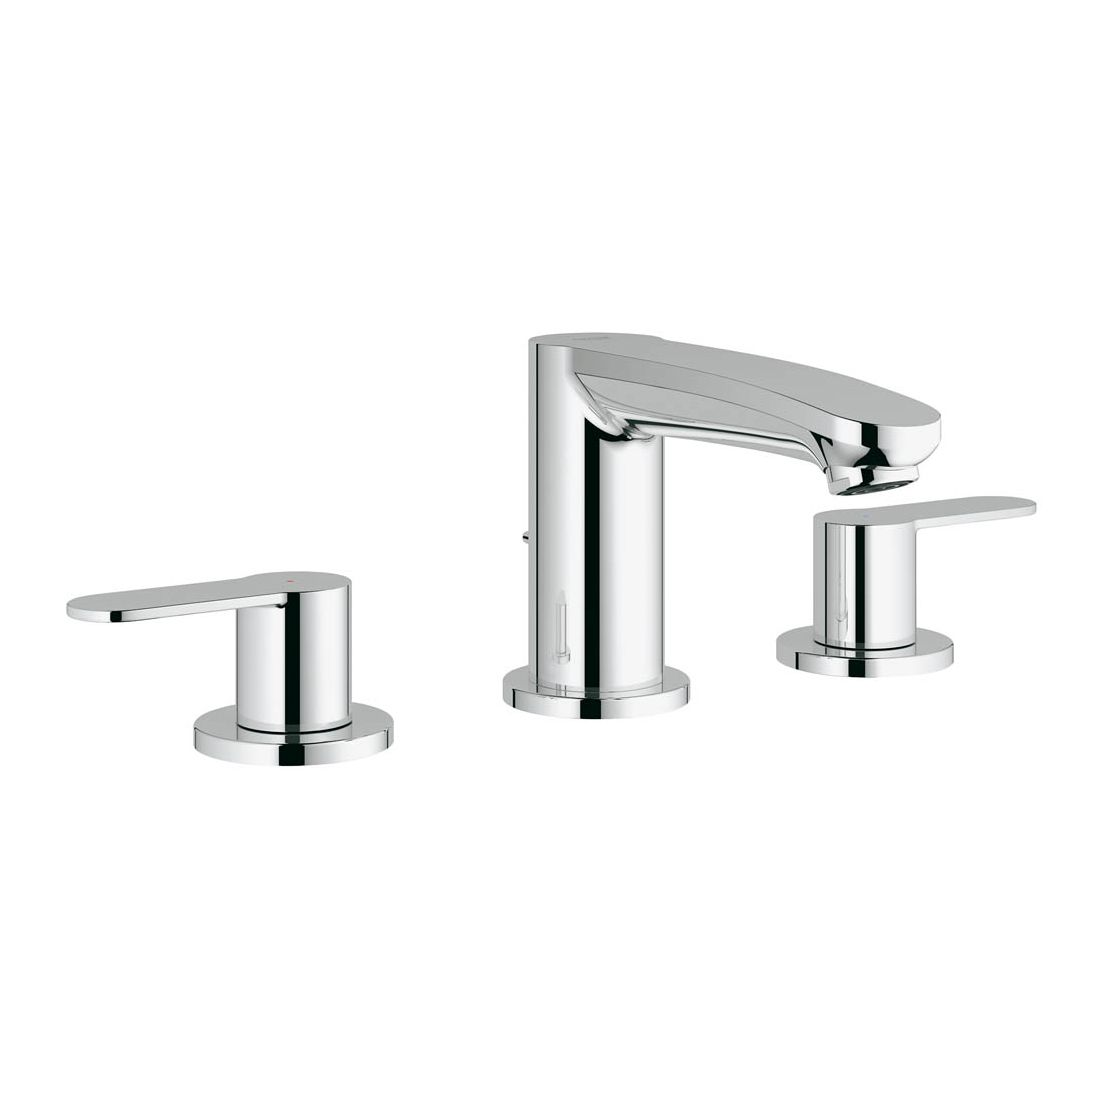 $261, lowes, Grohe 20209002 Eurostyle Cosmopolitan Wideset ...